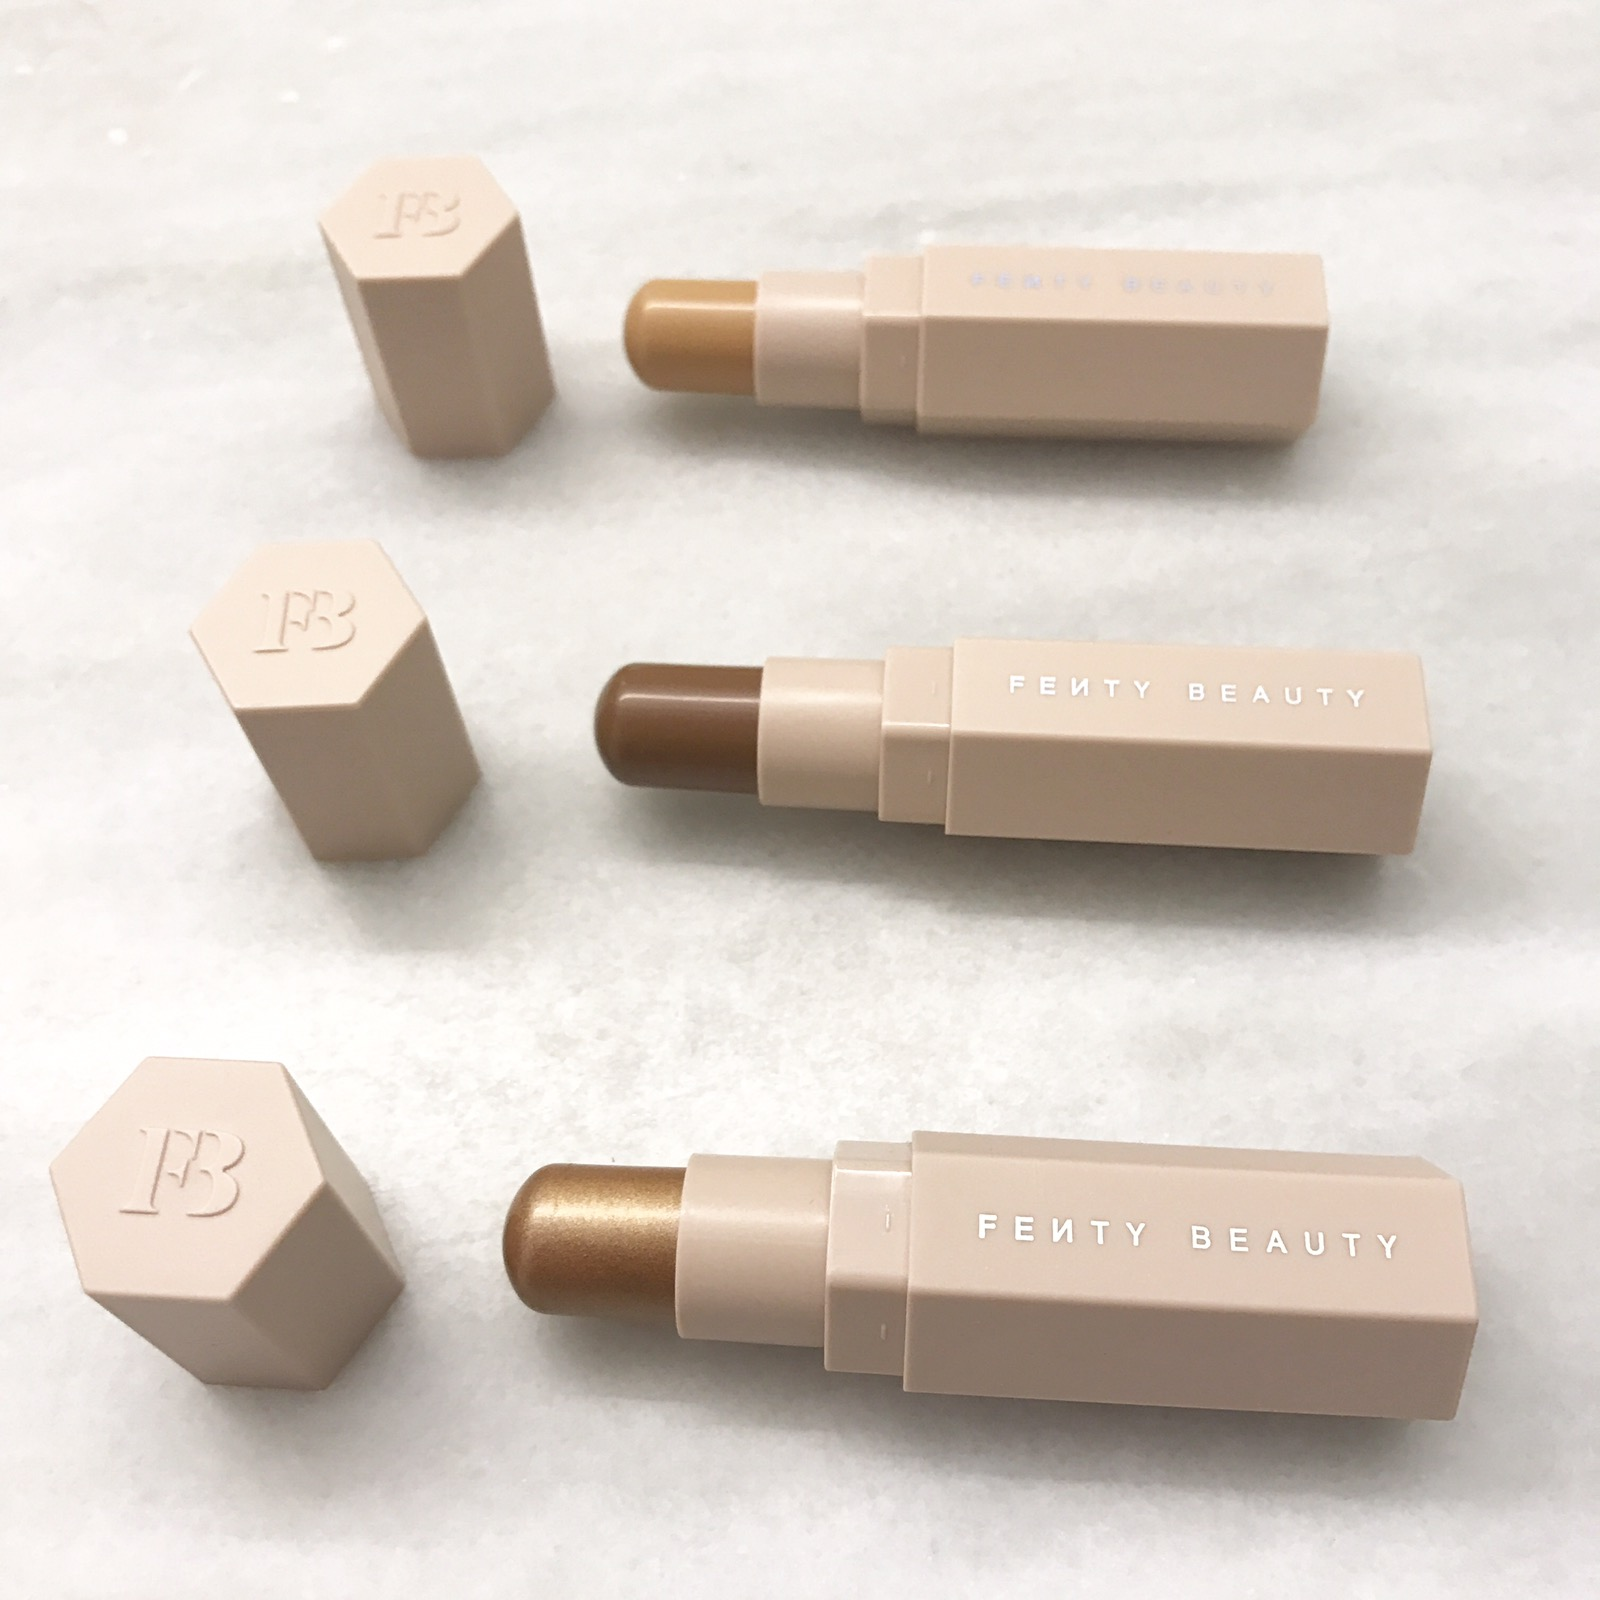 FENTY BEAUTY CONTOUR STICKS TAN